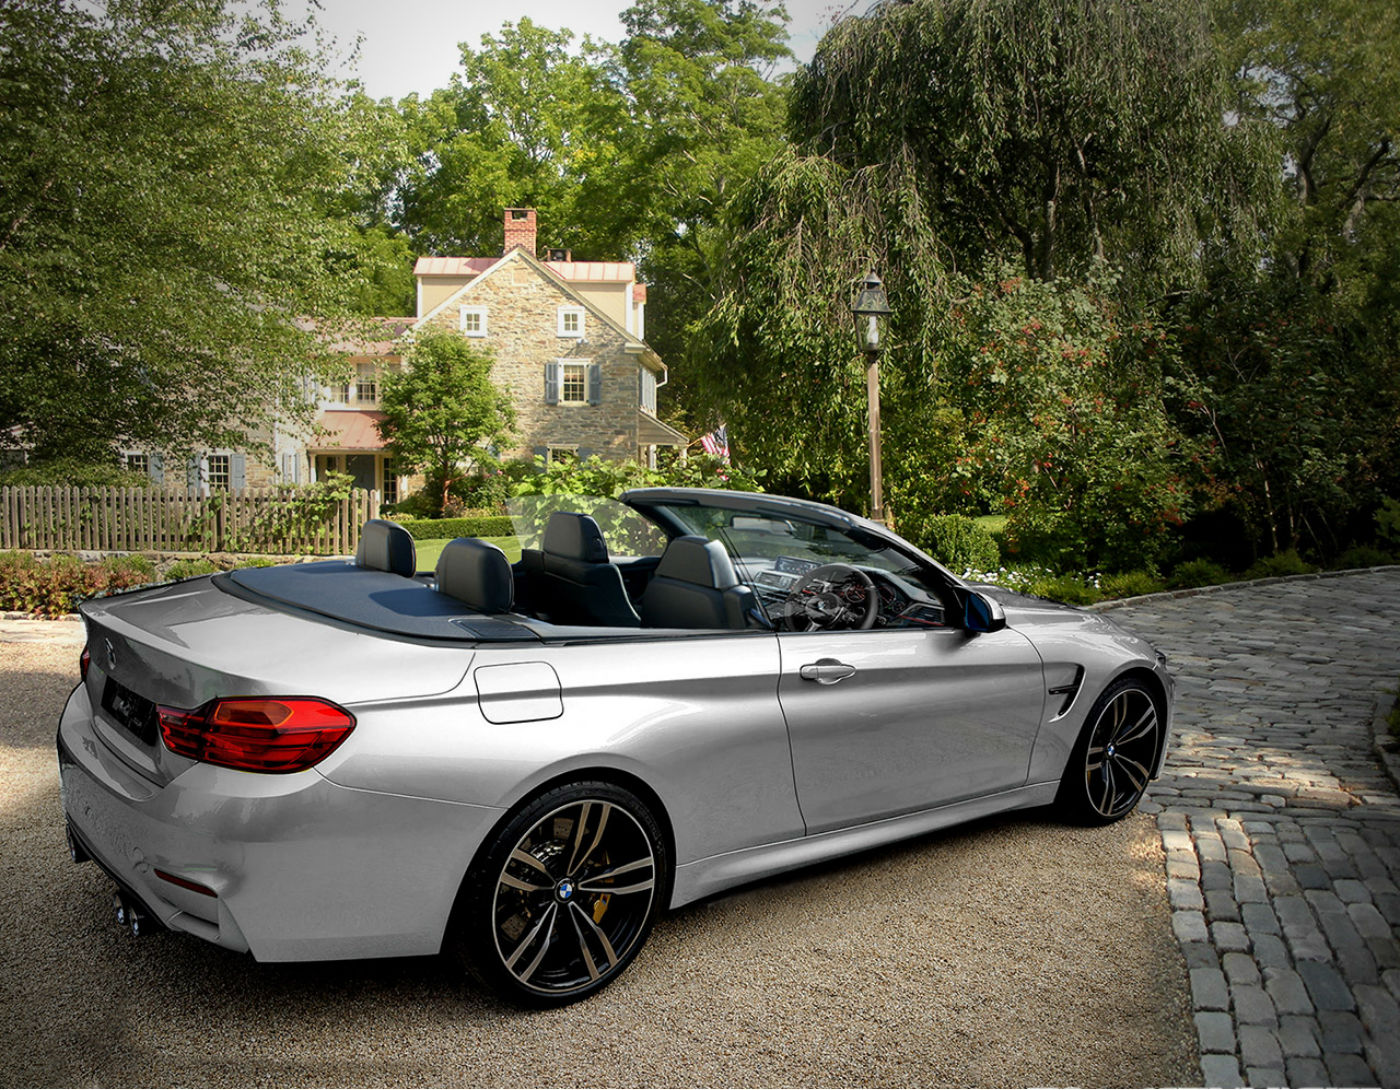 The Bmw M4 In Convertible Variant